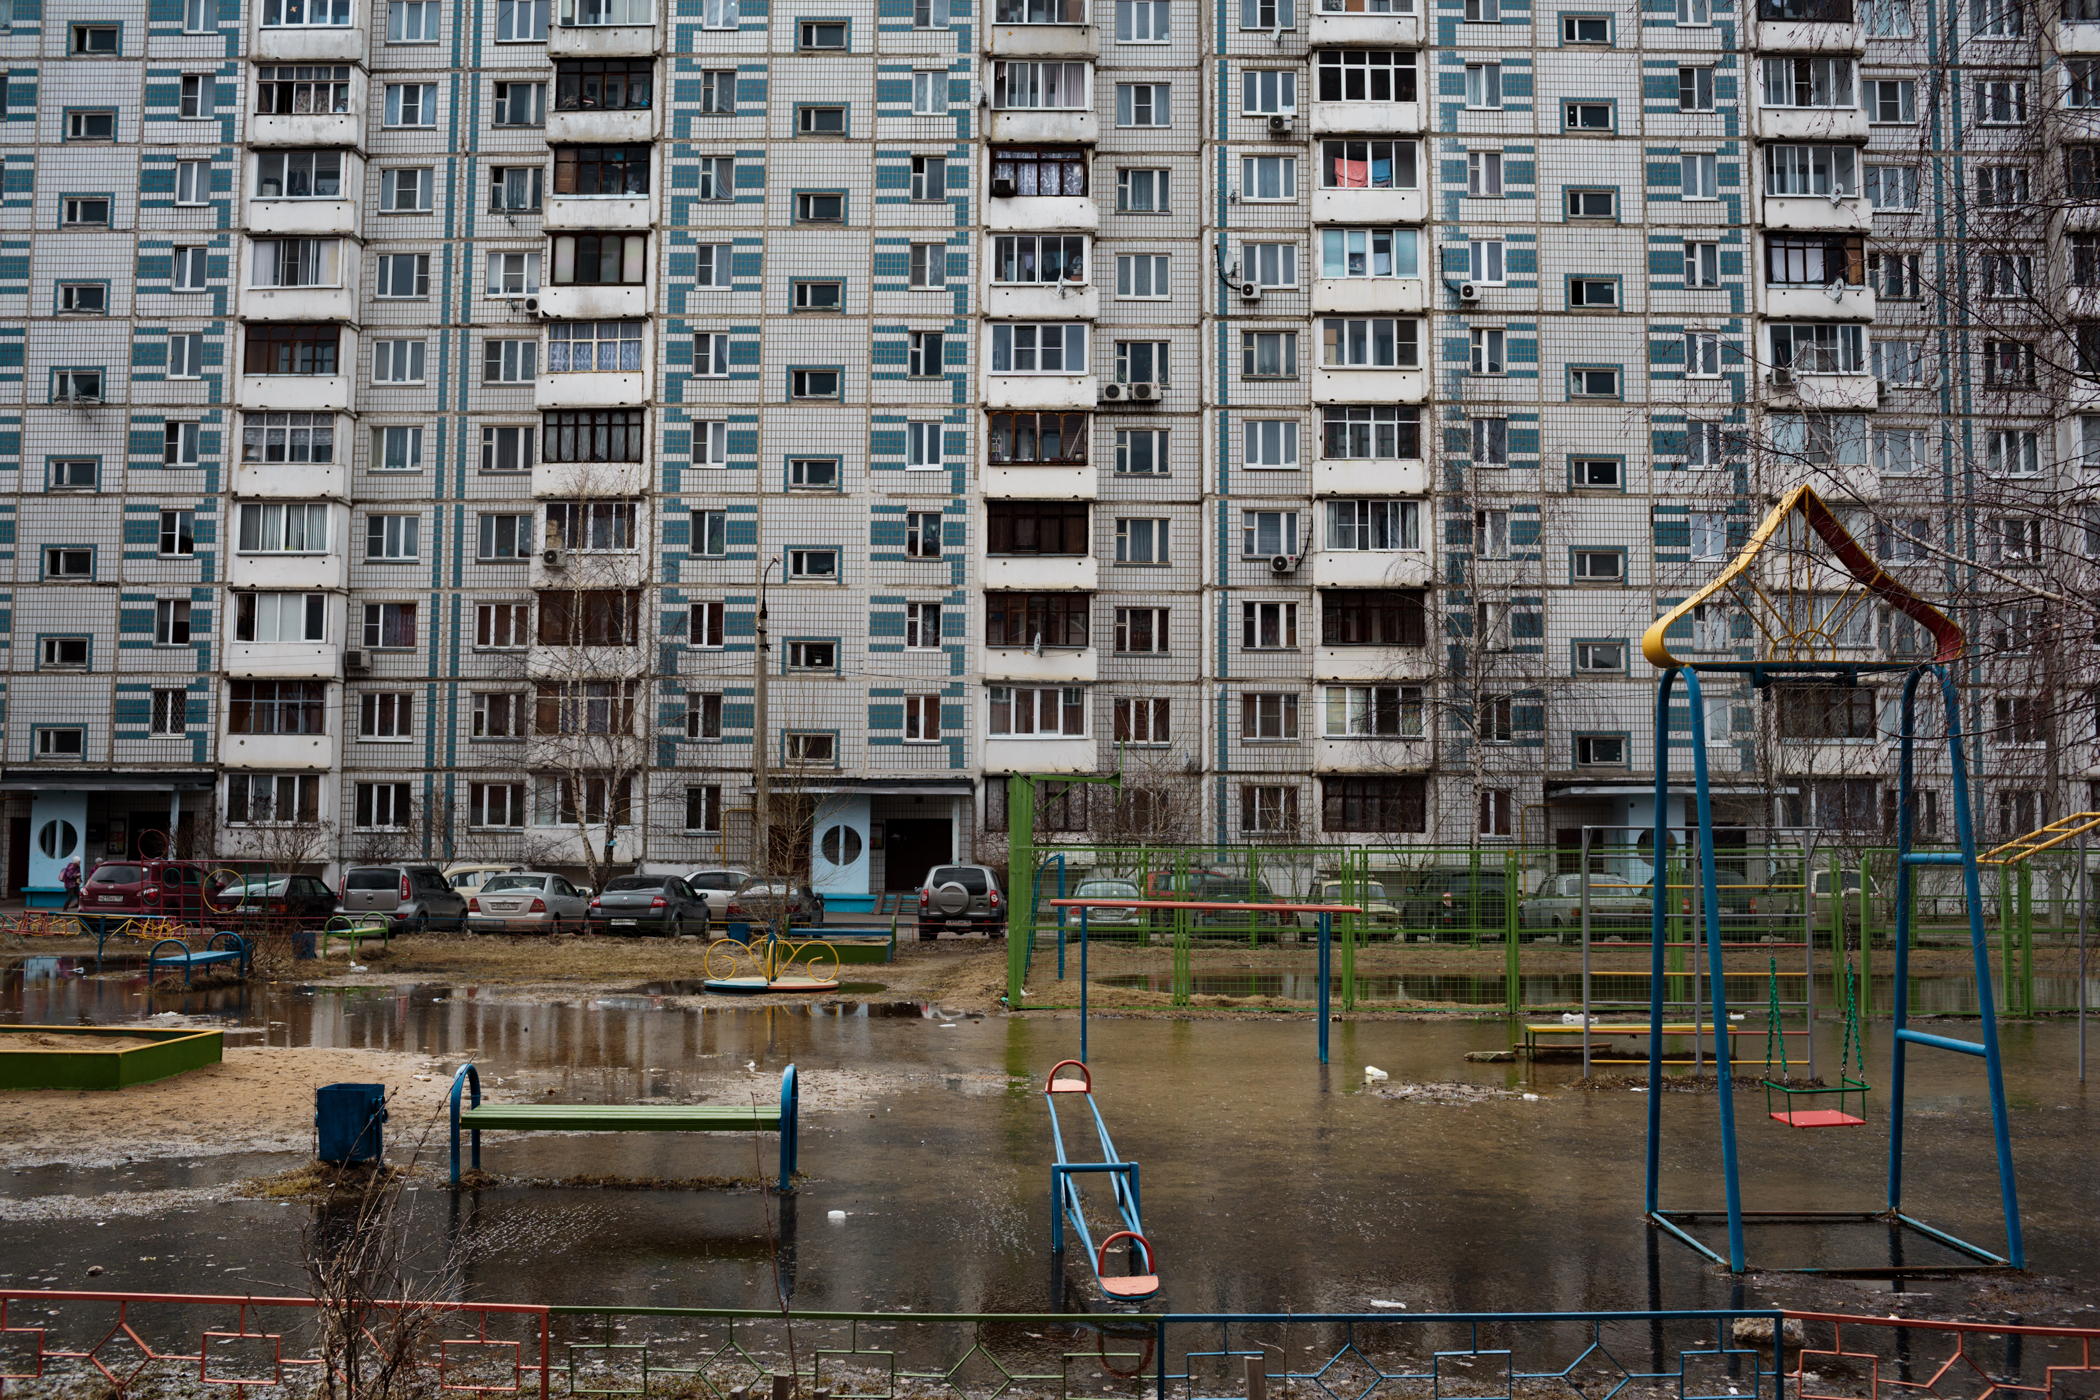 An apartment building in Dmitrov, Russia near School #7.